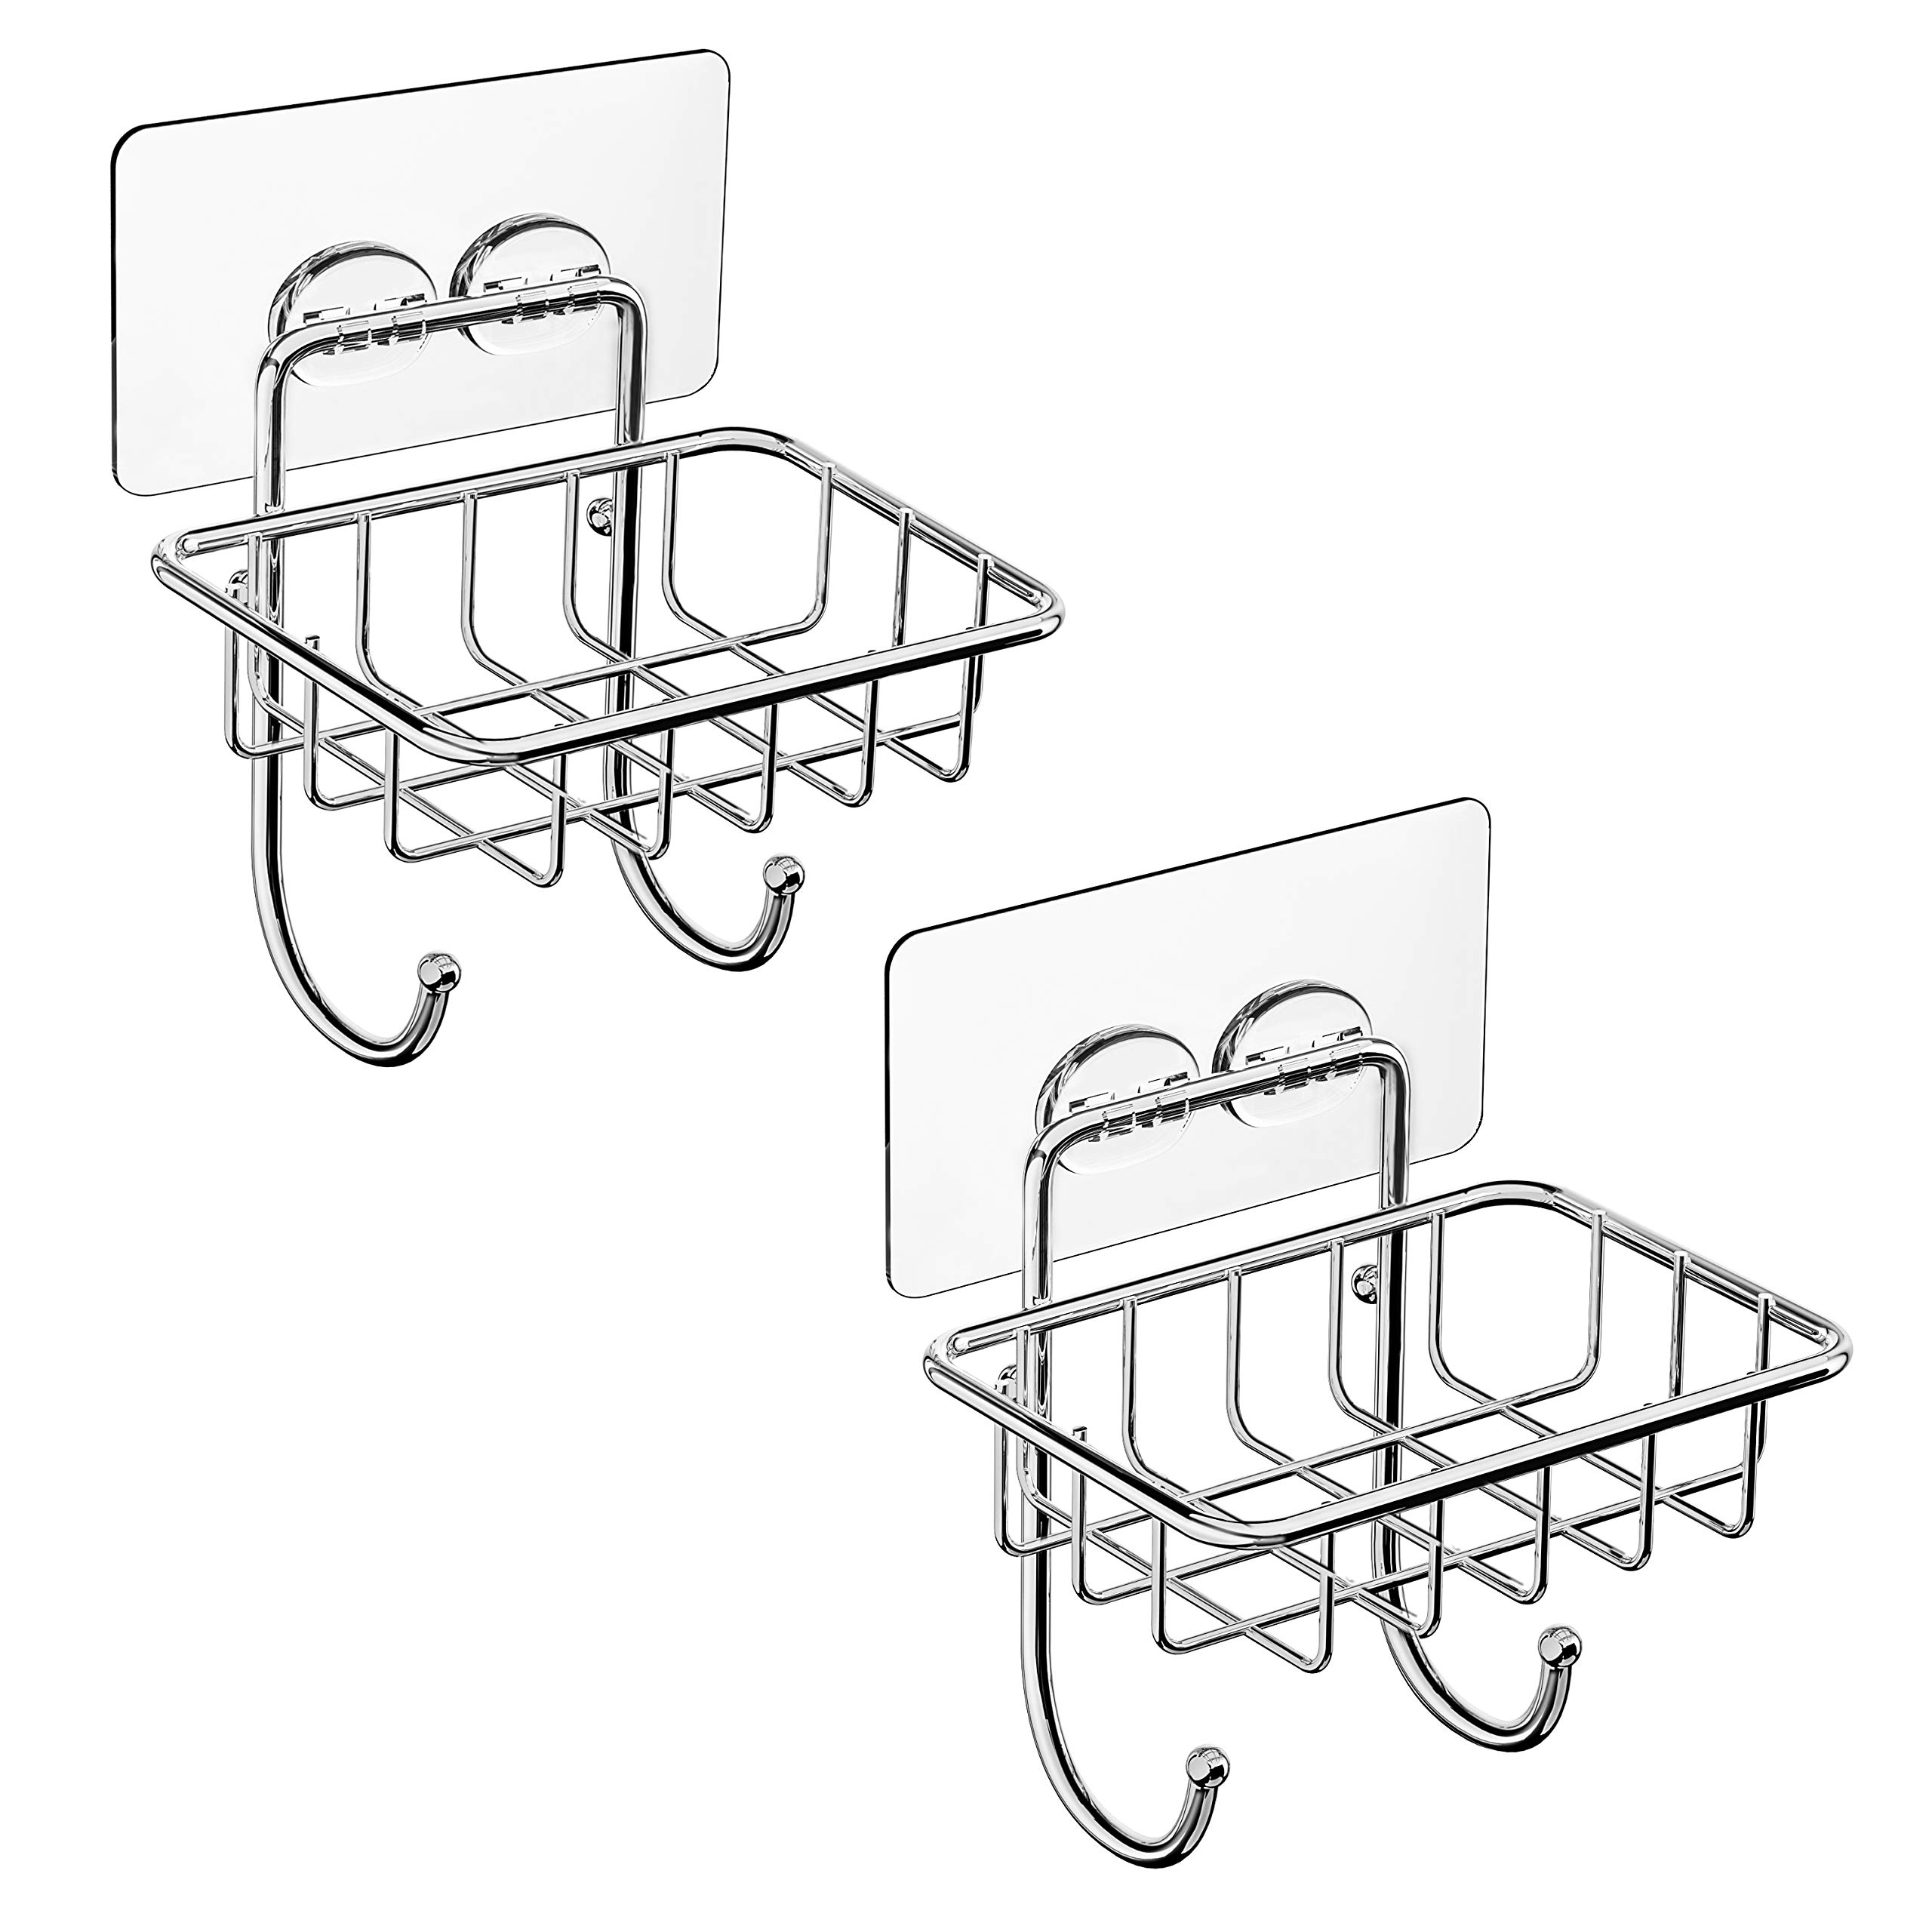 SMARTAKE 2-Pack Soap Dish, Stainless Steel Soap Holder with 2 Hooks, Wall Mounted Soap Dishes with Adhesive for Bathroom, Toilet, No Drilling by SMARTAKE